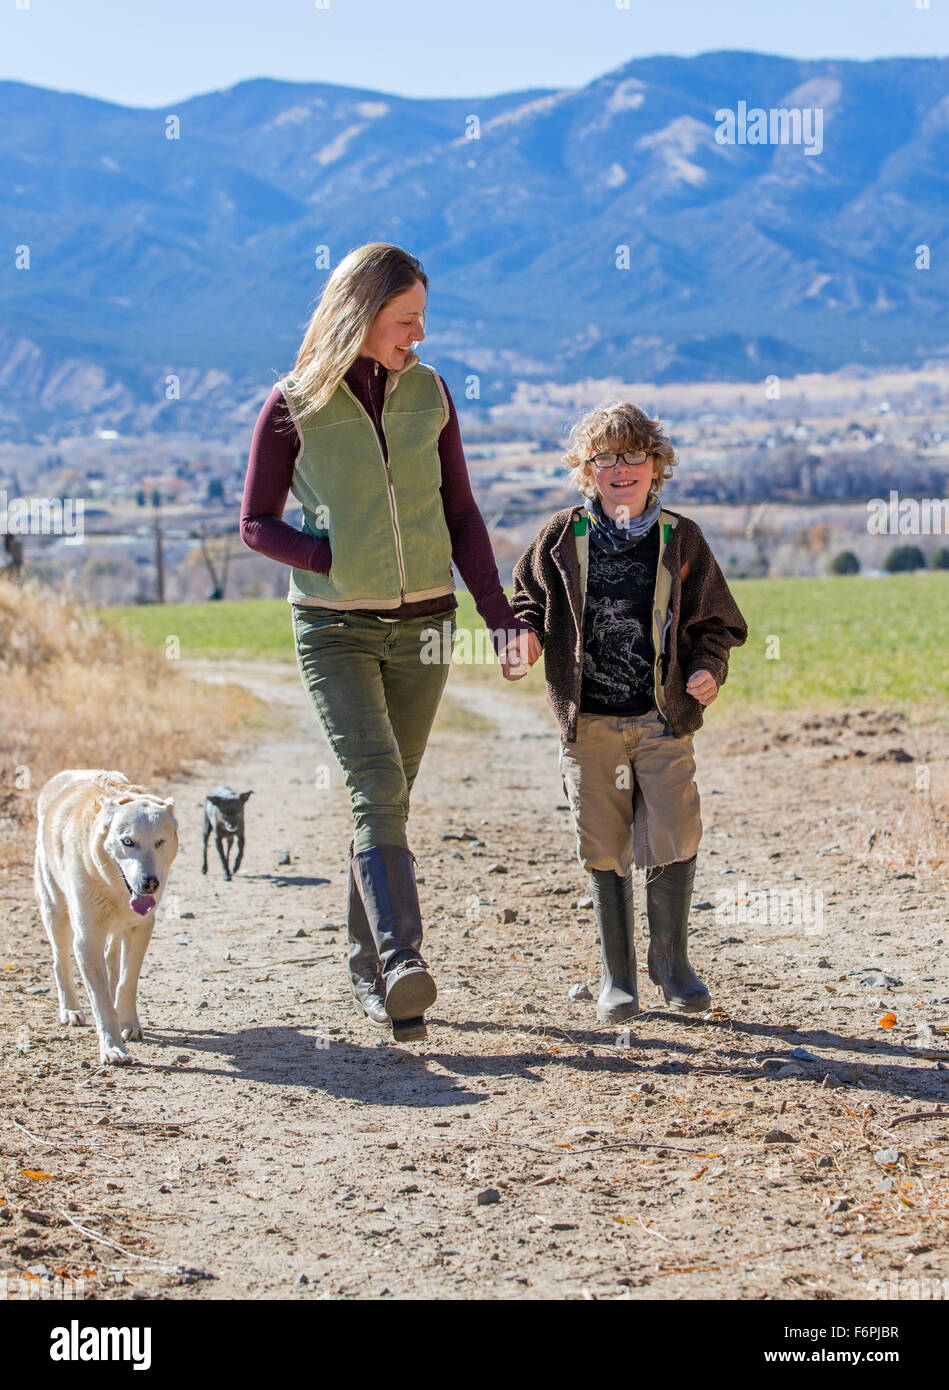 Attractive mother; young son and pet dogs walking along dirt path on ranch - Stock Image